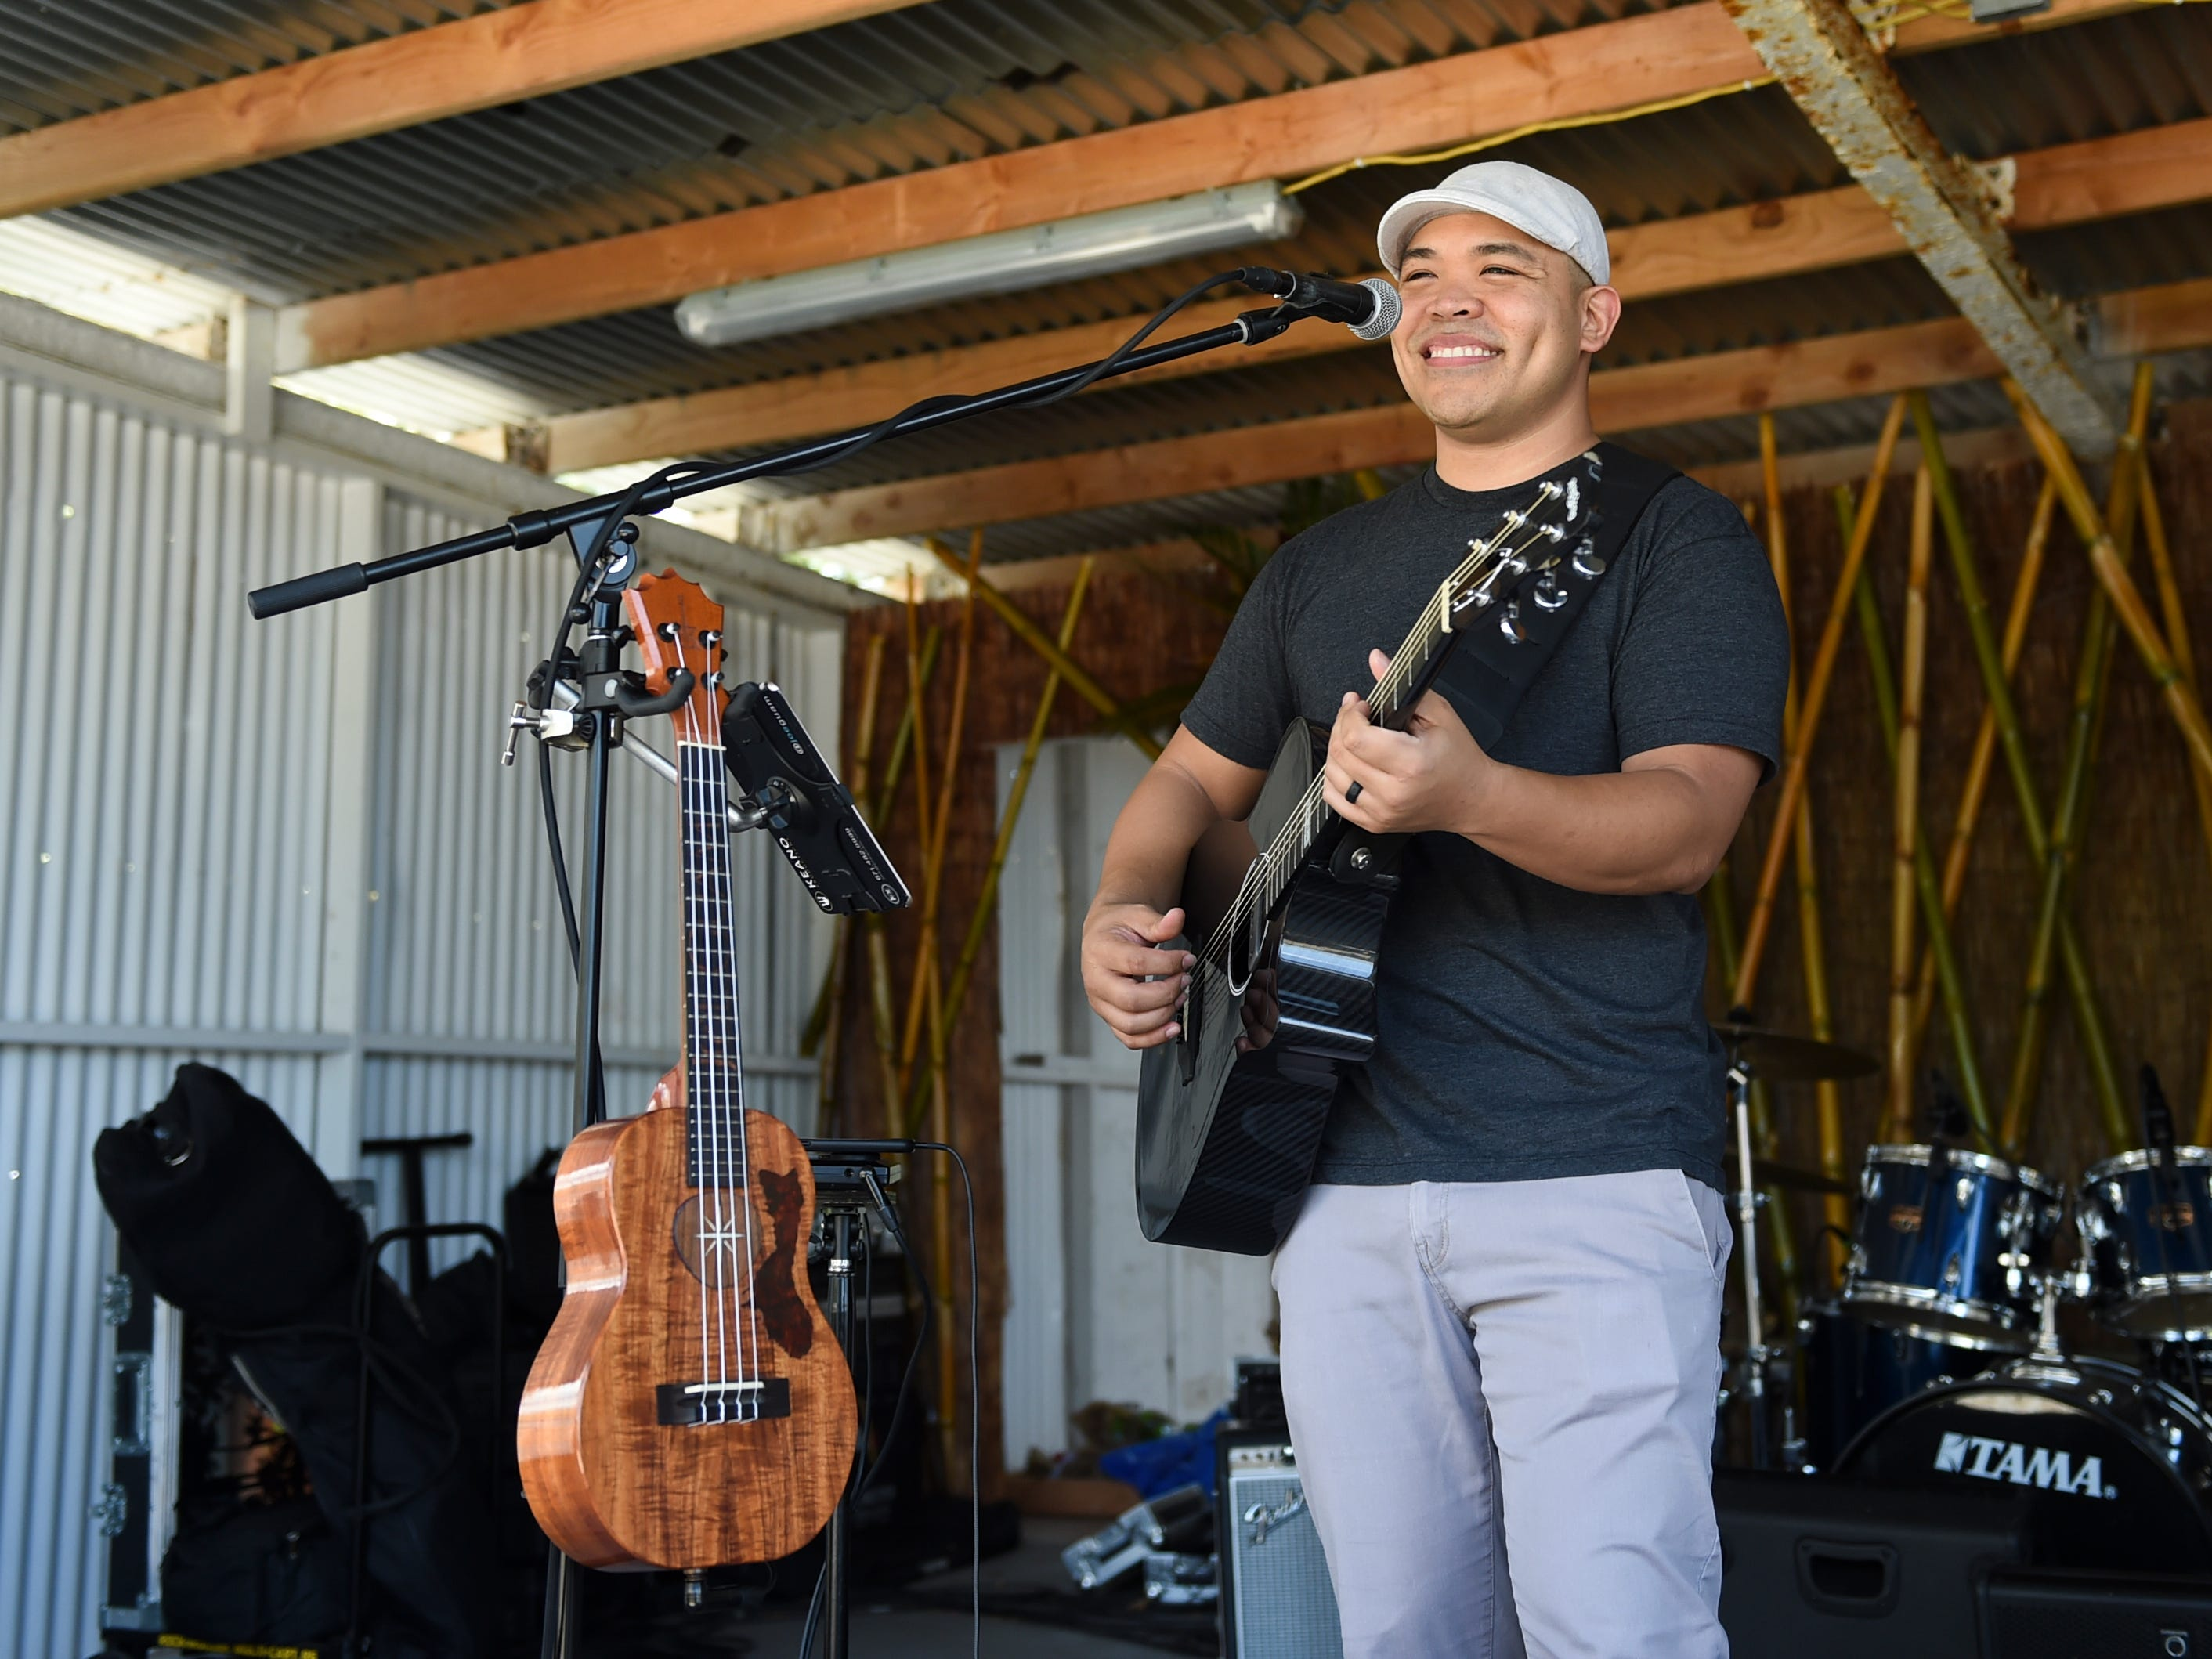 Local artist Joe Guam performs during the Guam History and Chamorro Heritage Day Festival 2019 at Umatac Bay Park, March 10, 2019.